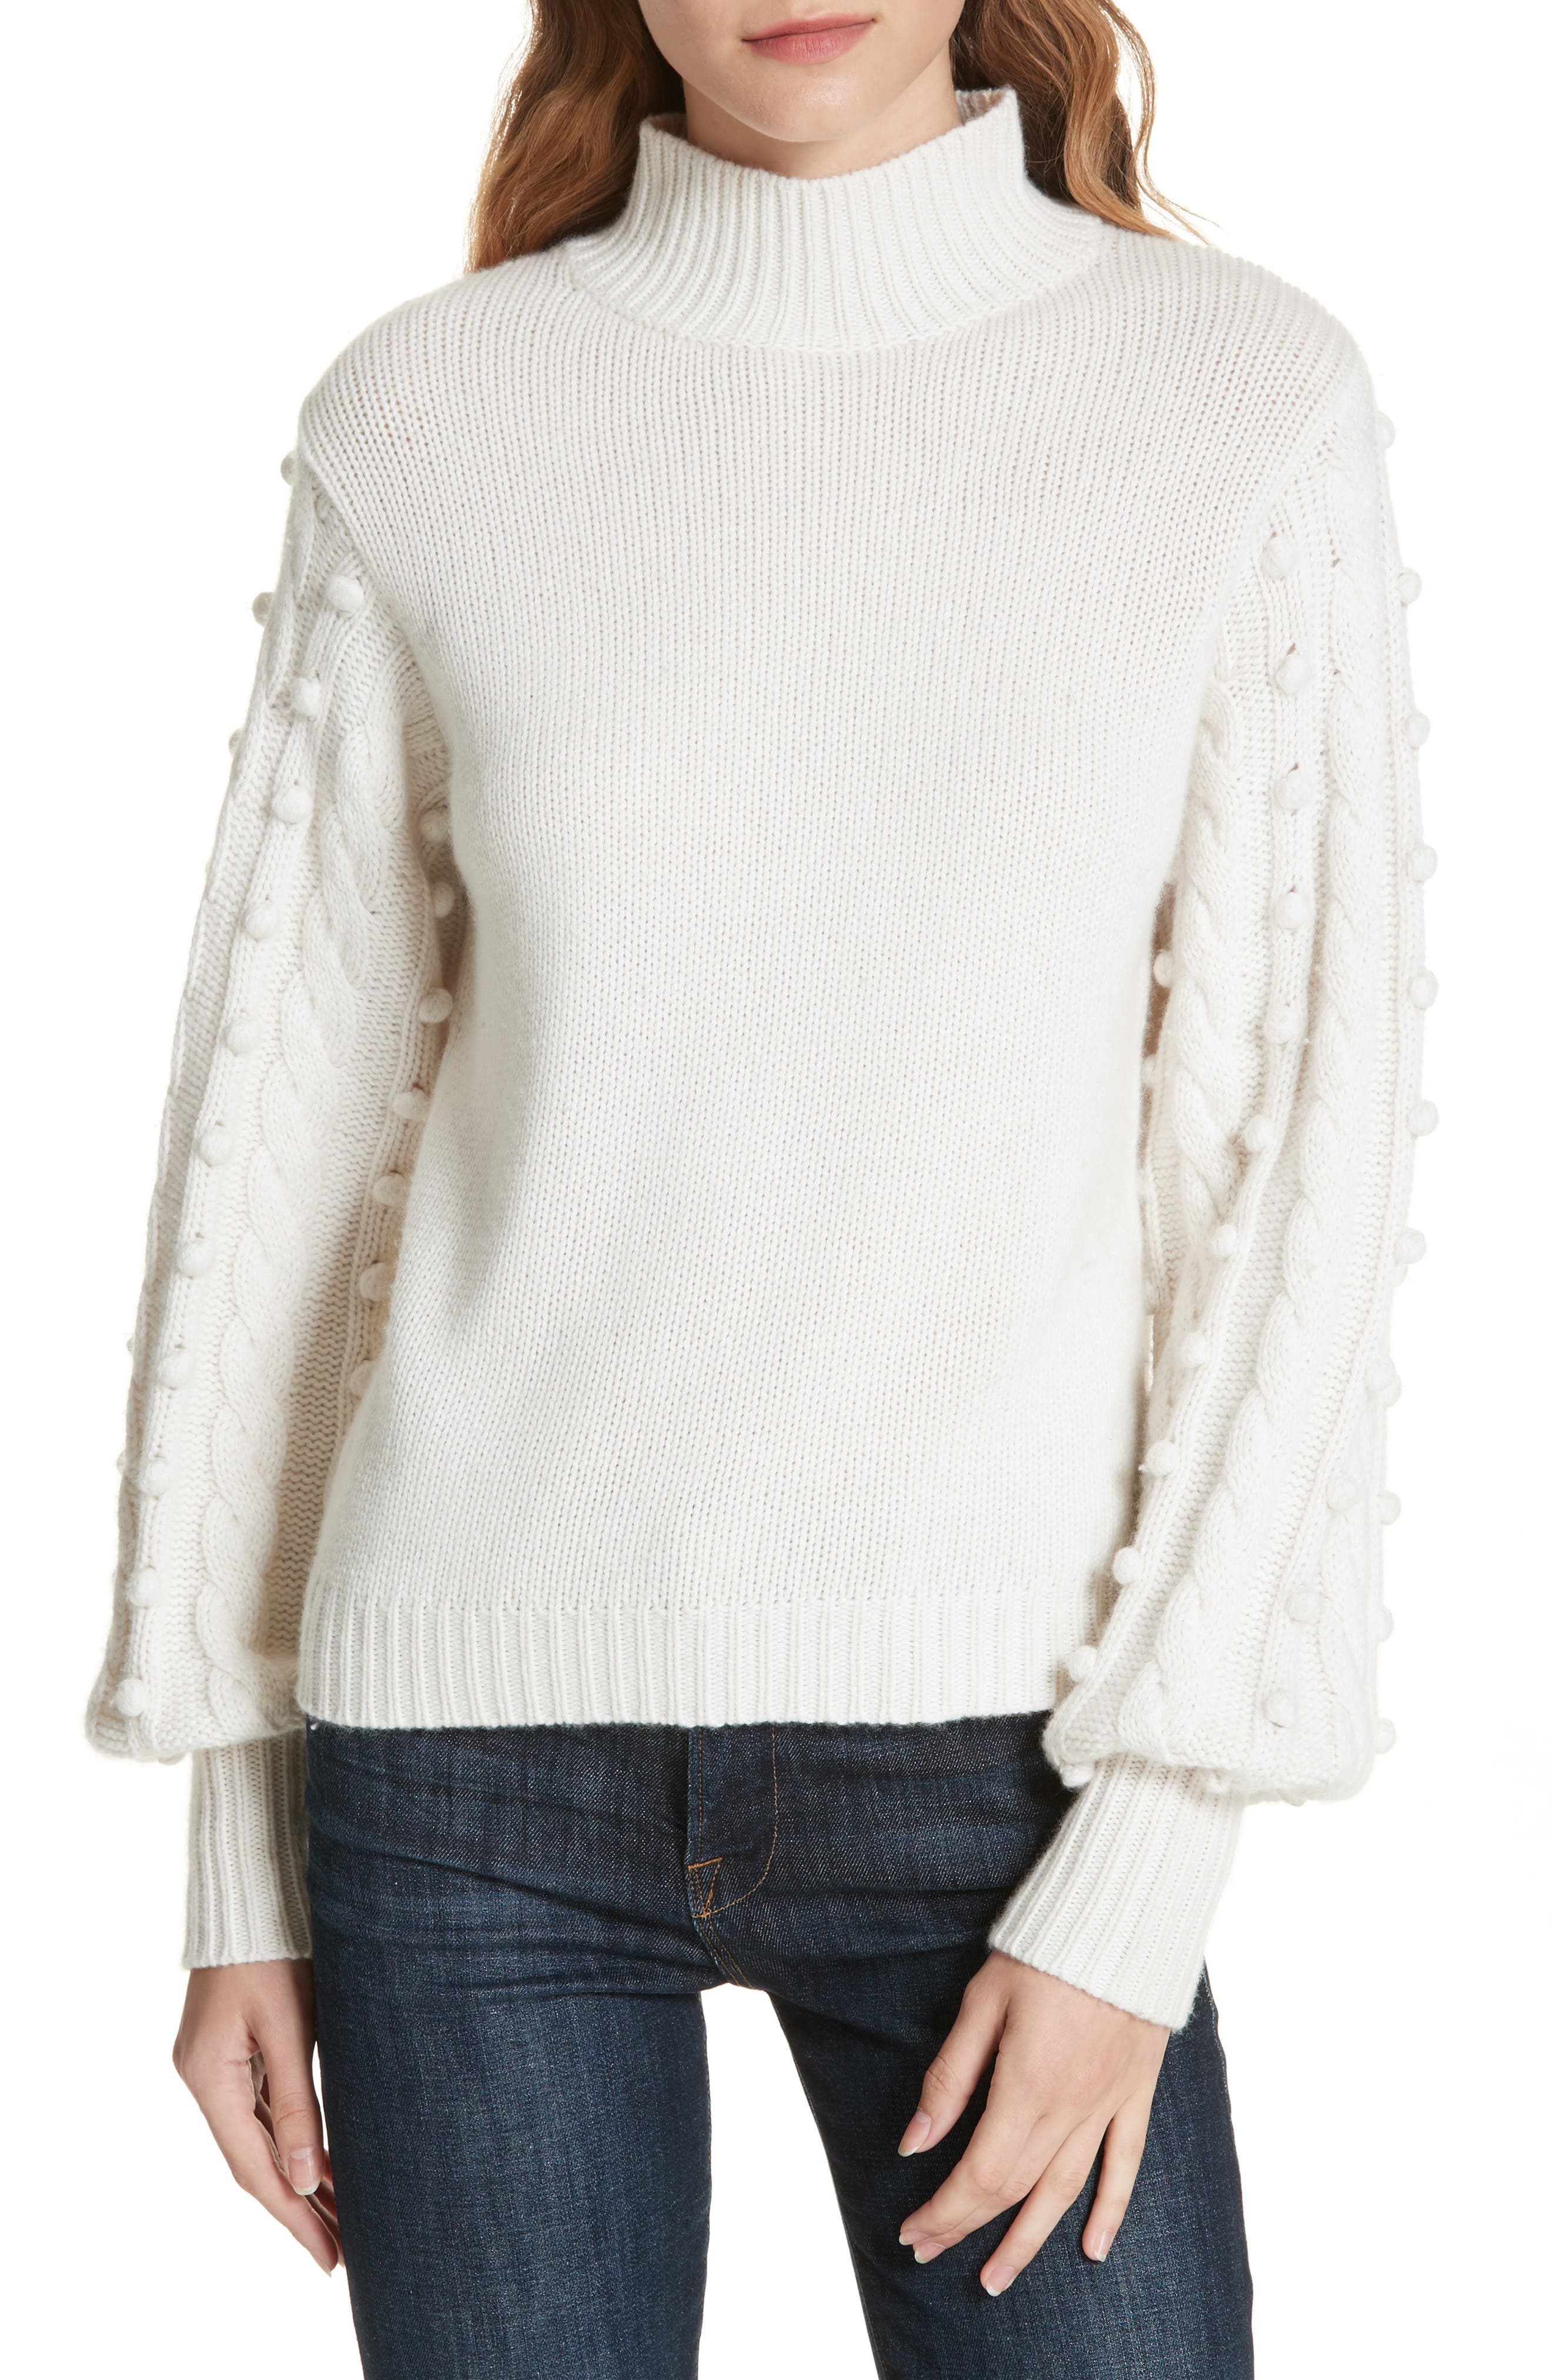 AUTUMN CASHMERE Popcorn Sleeve Cashmere & Wool Blend Sweater in Vanilla